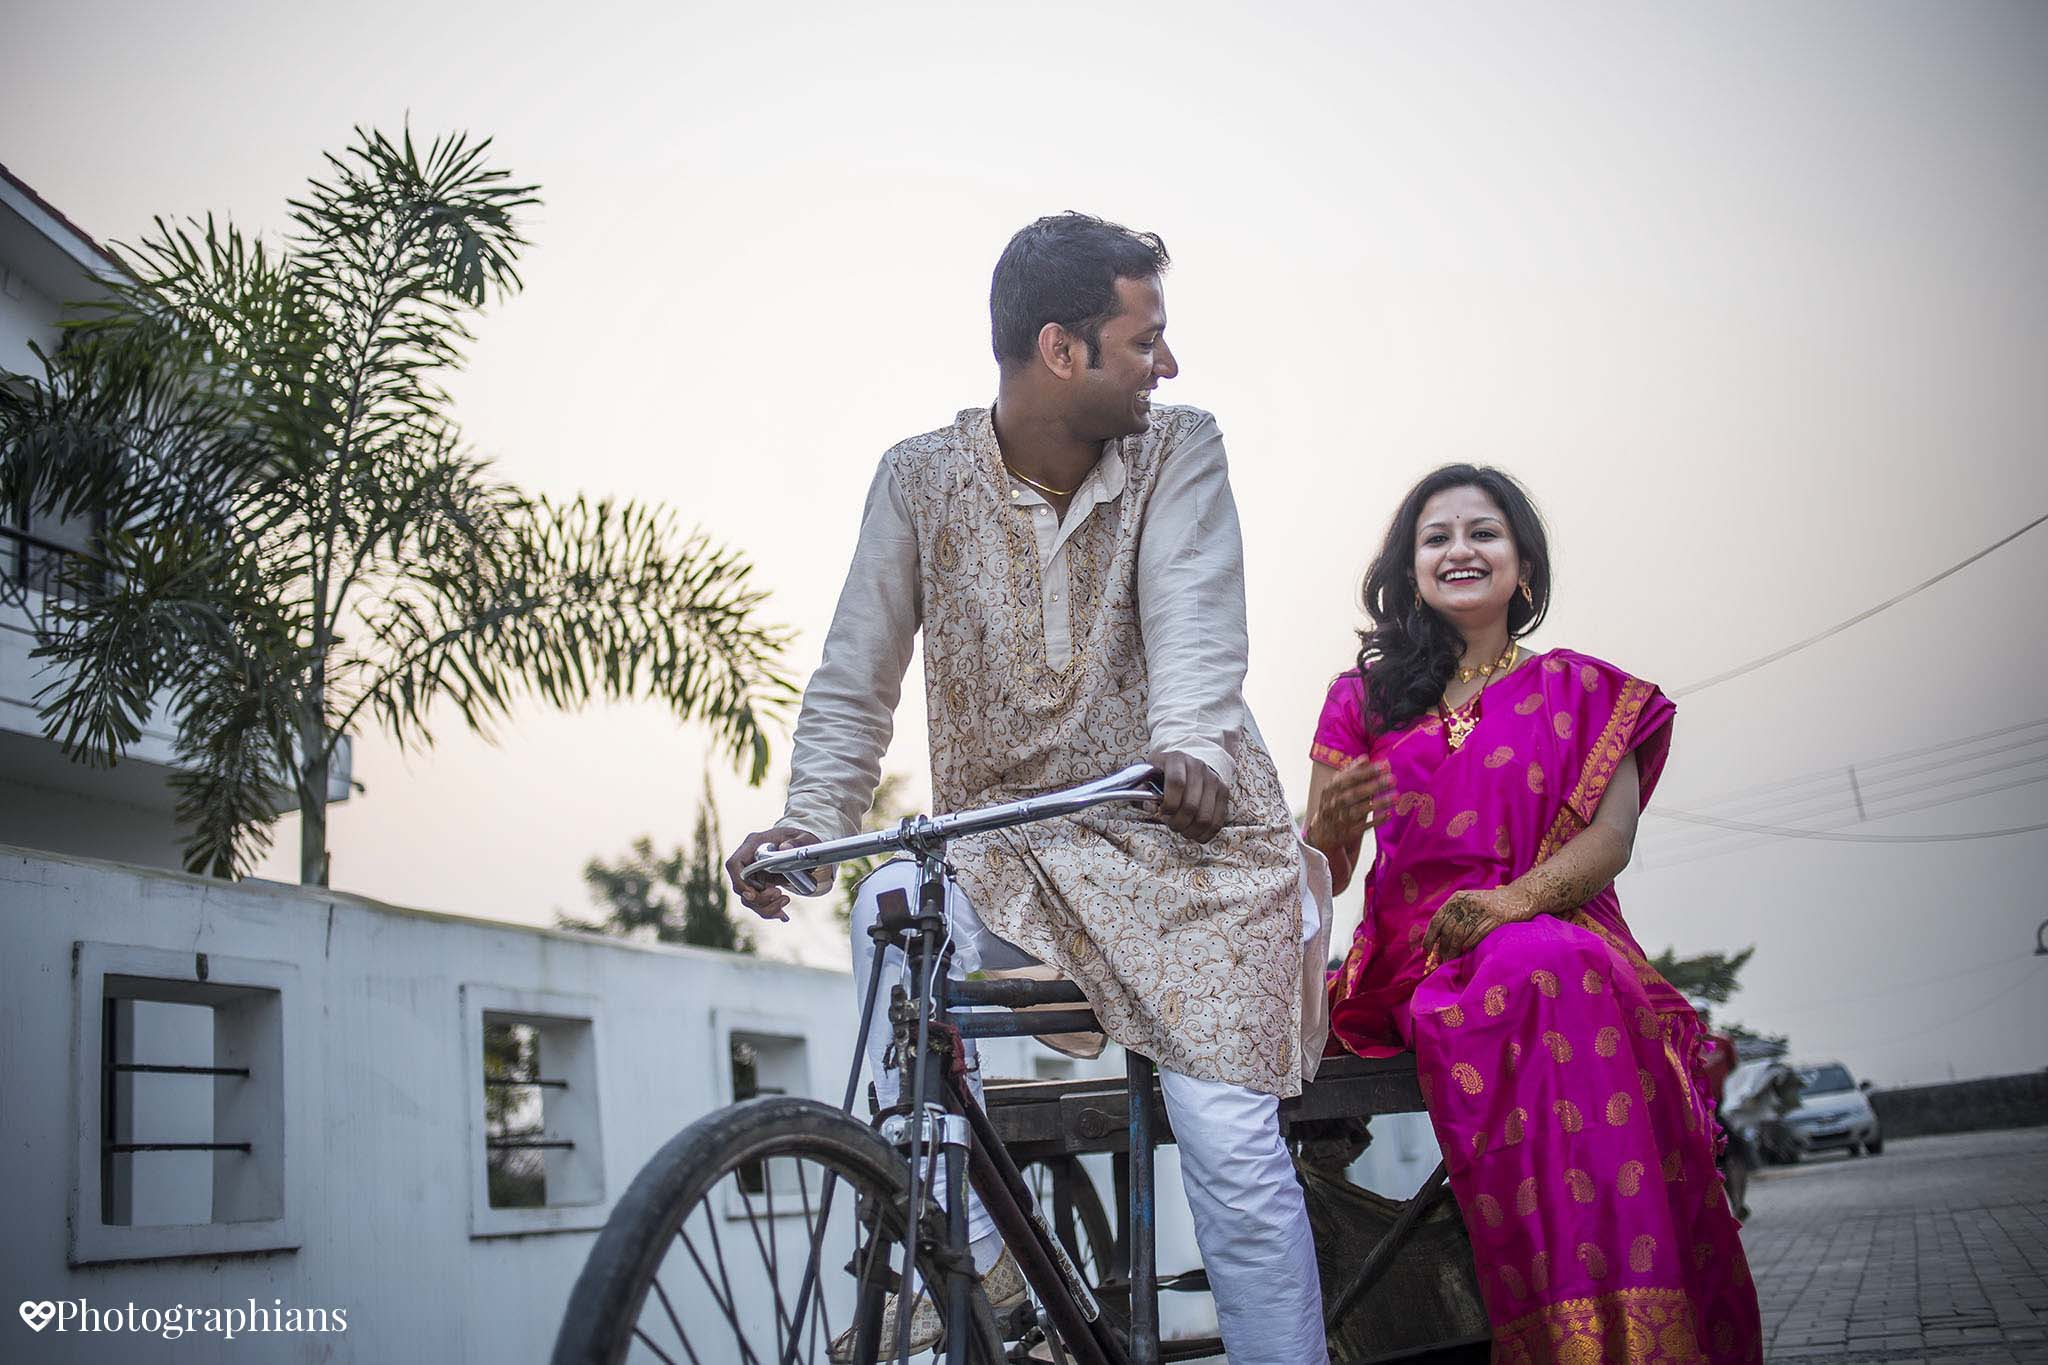 Photographians_Indian_Destination_Wedding_063